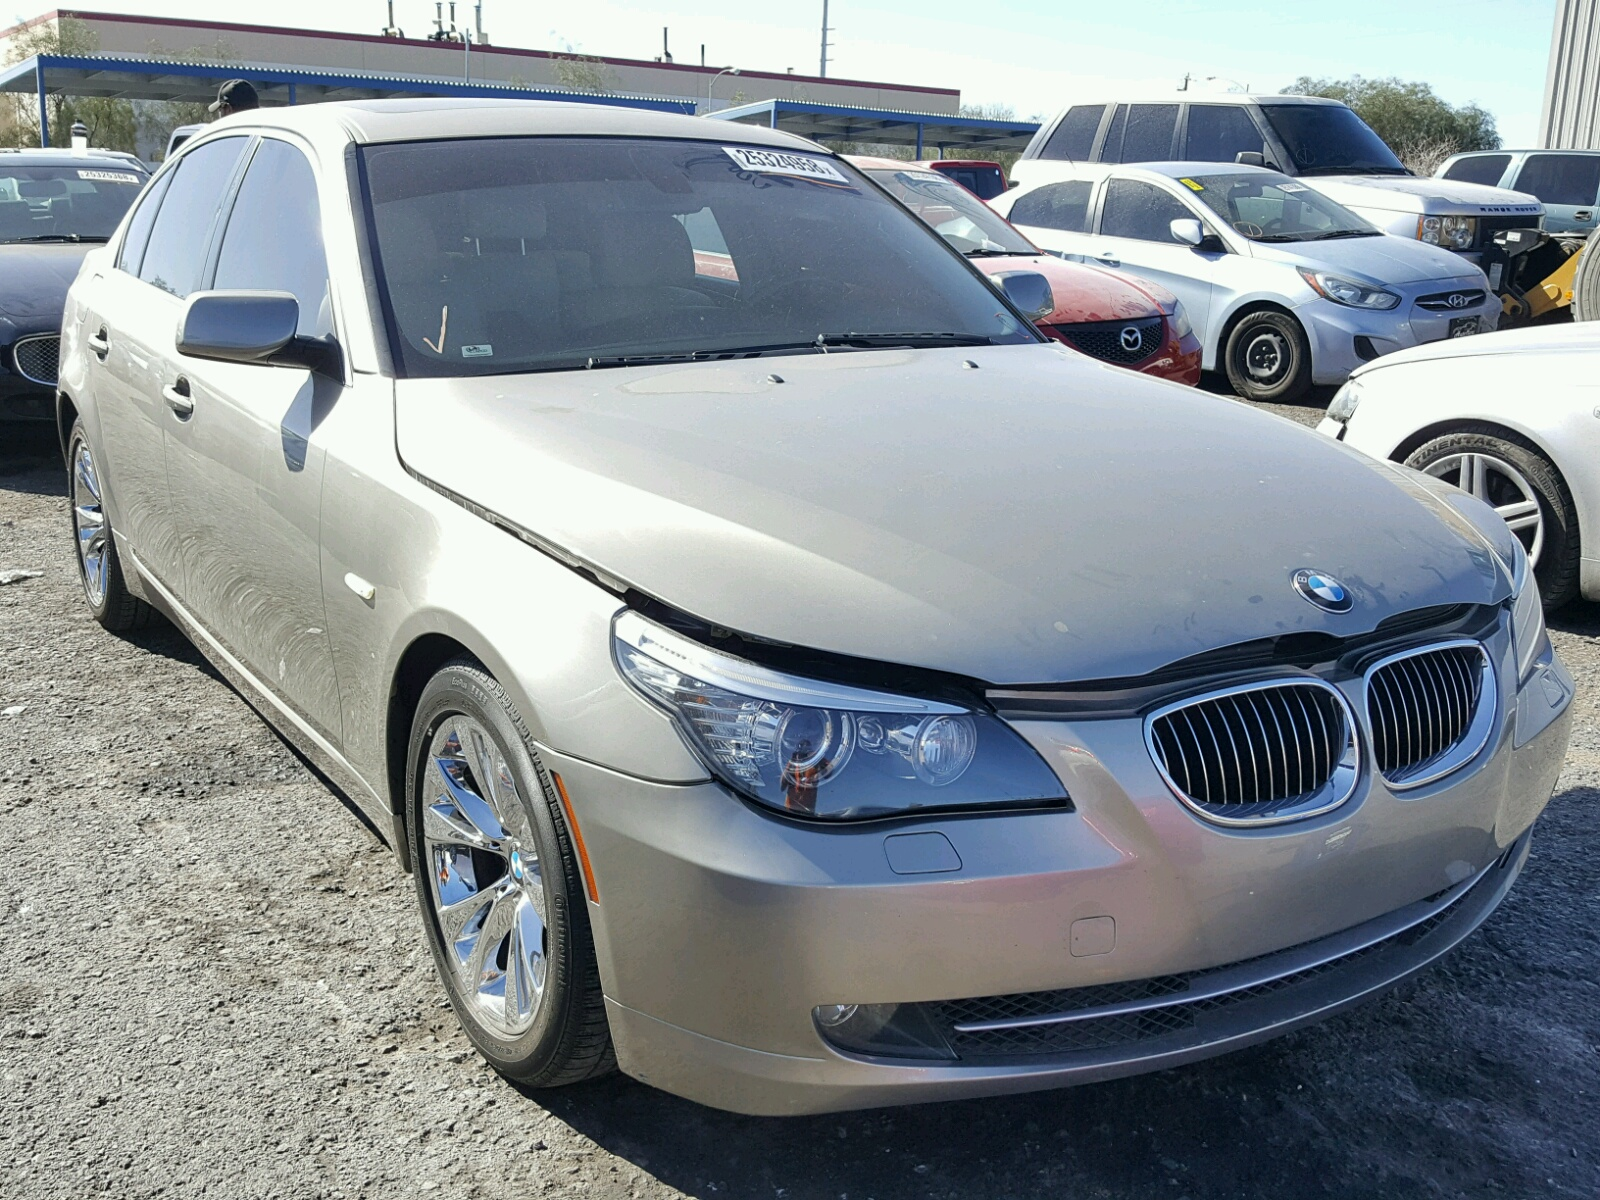 Auto Auction Ended On VIN WBAGNDS BMW LI In PA - 745 bmw 2010